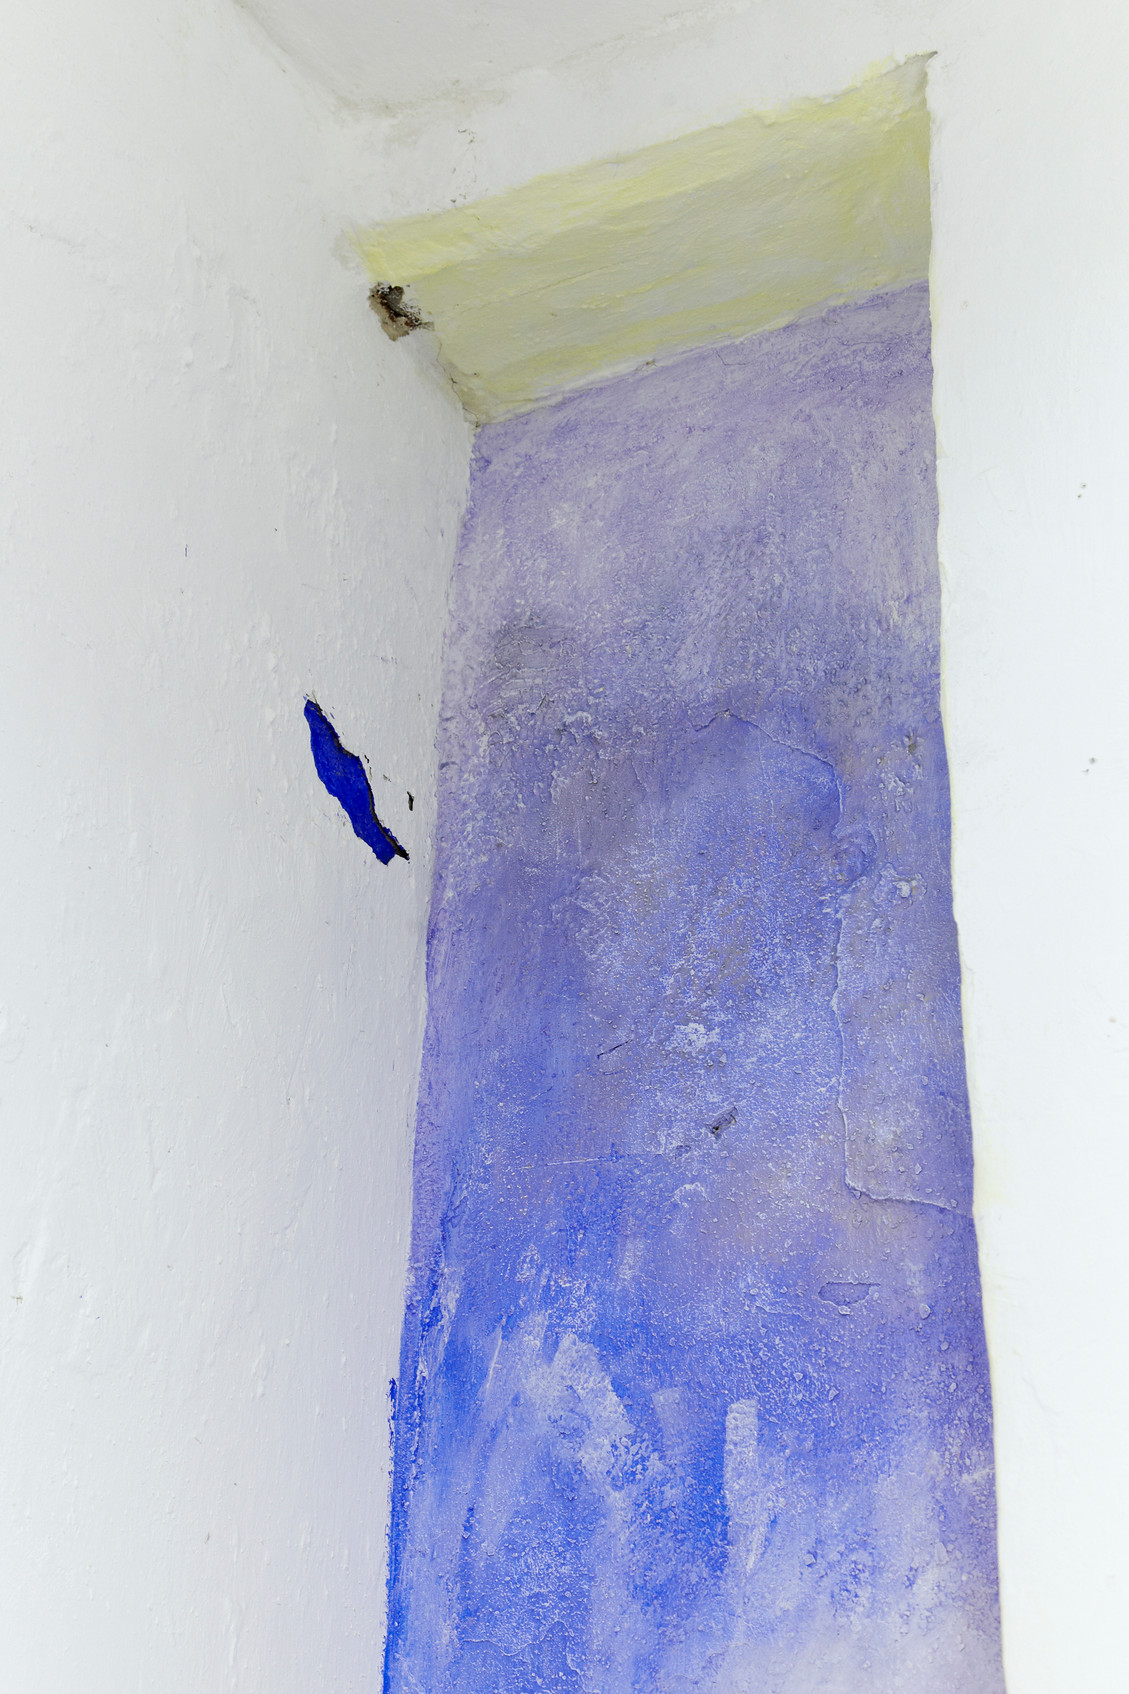 site specific intervention, dimensions variable, pigment and médium on wall, 2018 (detail)